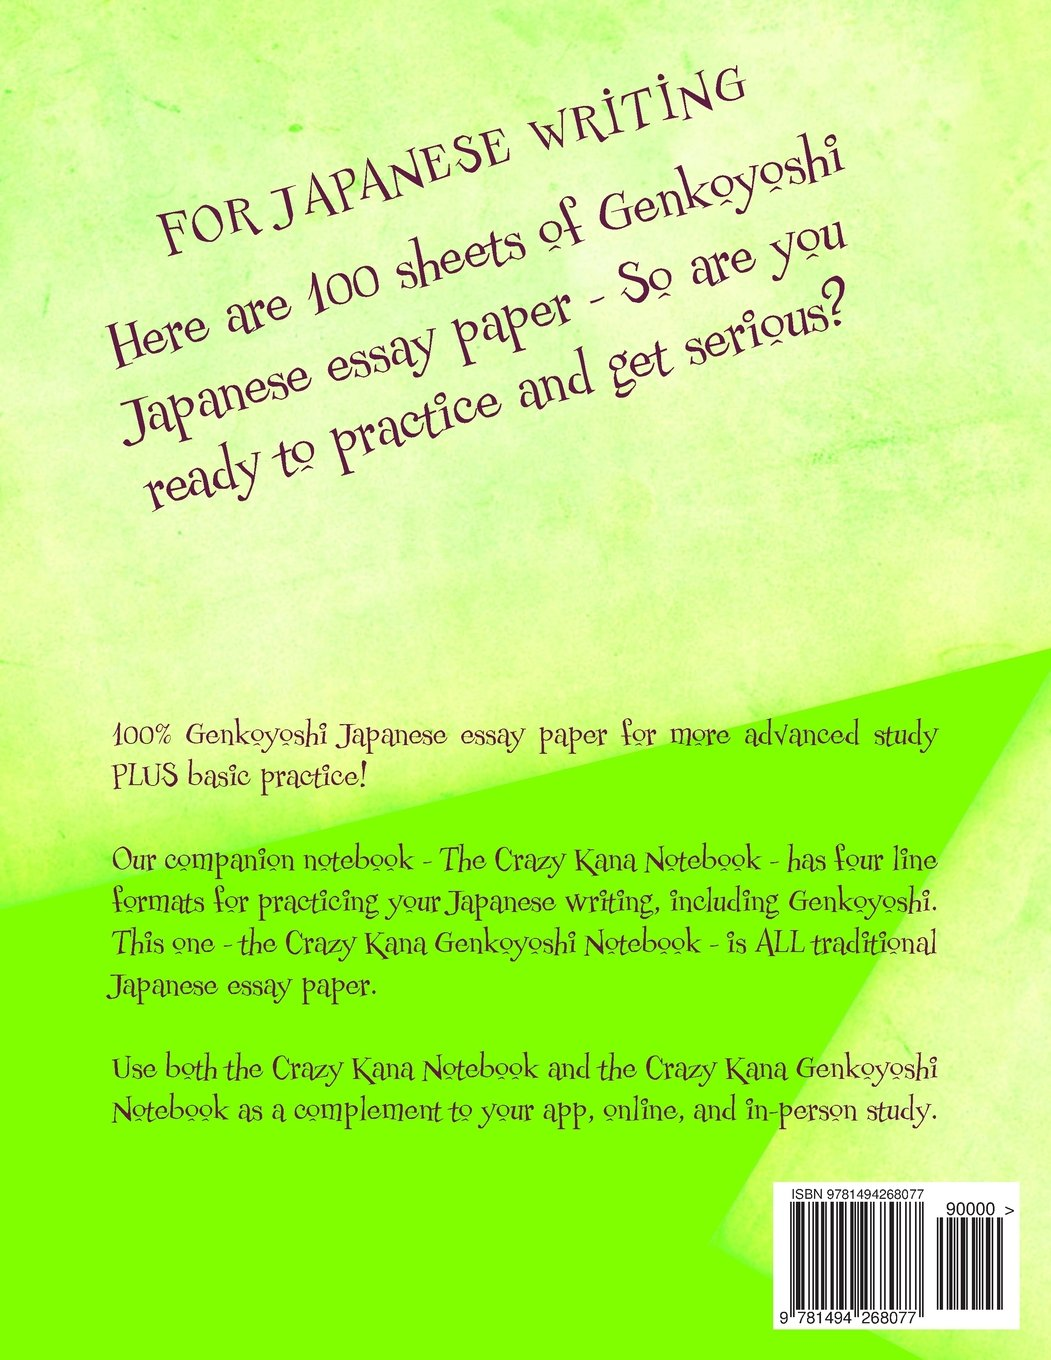 Crazy Kana Genkoyoshi Notebook: 100 Sheets Of Genkoyoshi Japanese Essay  Paper: Amazon.co.uk: Jenelle Valentine Davenport, Giselle C Davenport: ...